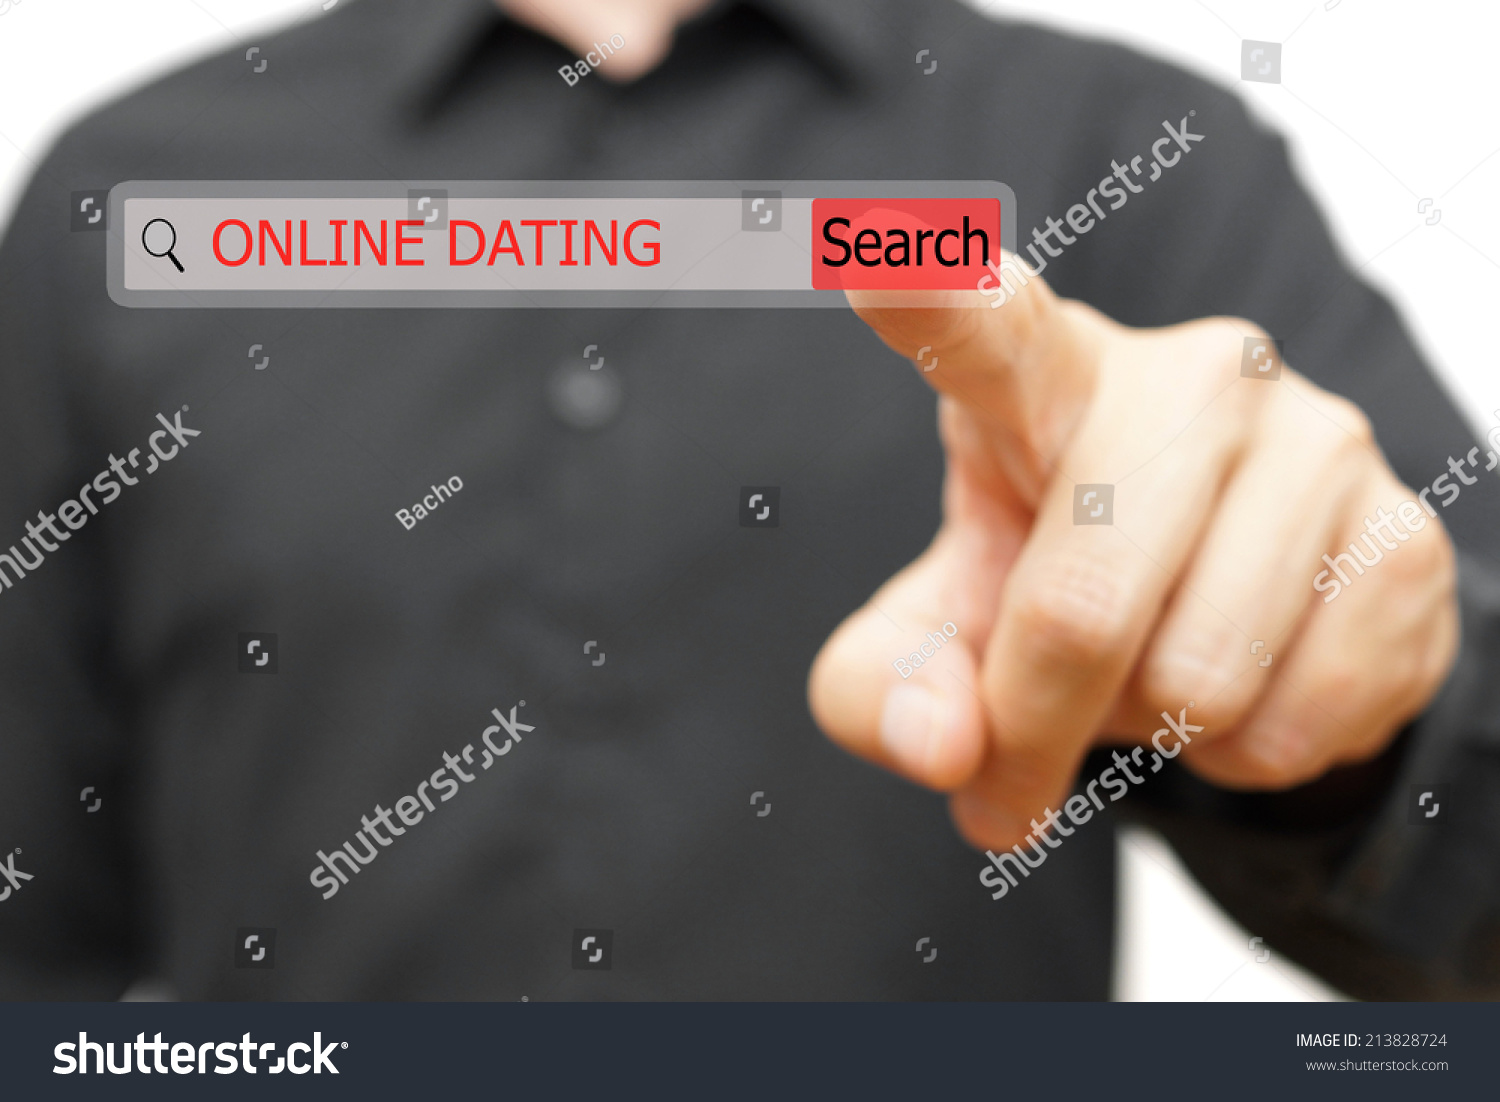 online dating search